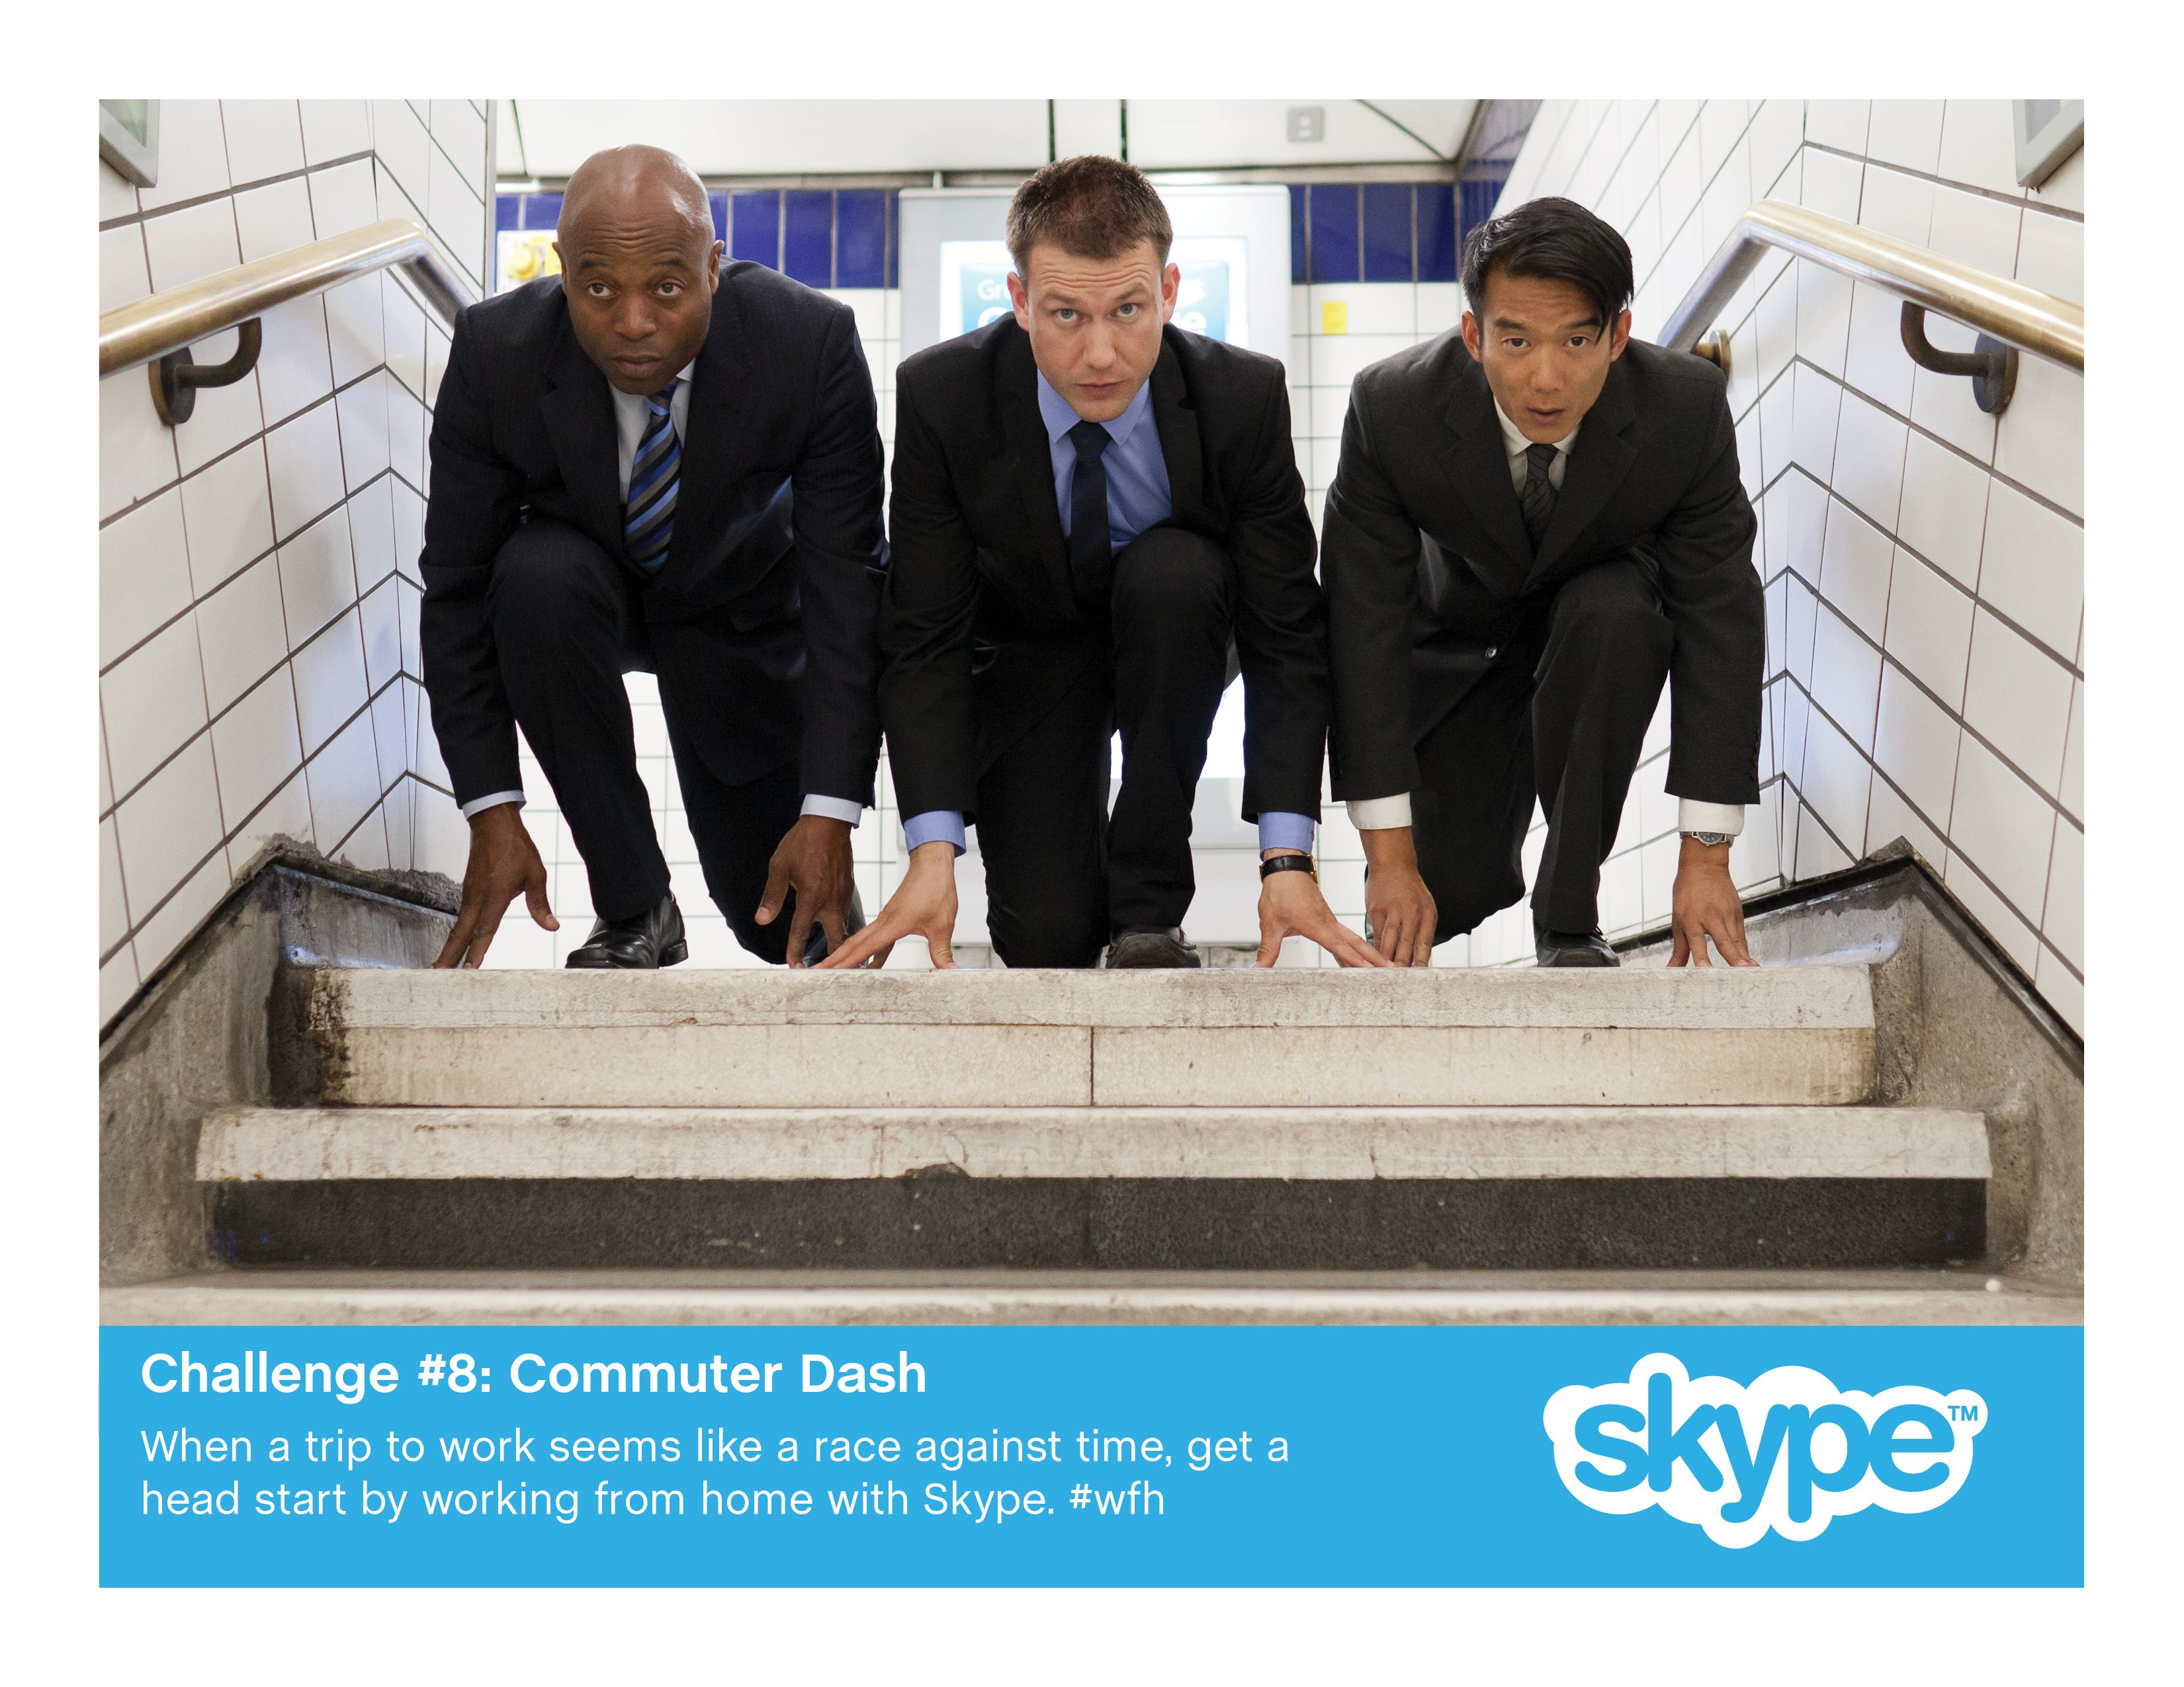 When a trip to work seems like a race against time, get a head start by working from home with Skype.